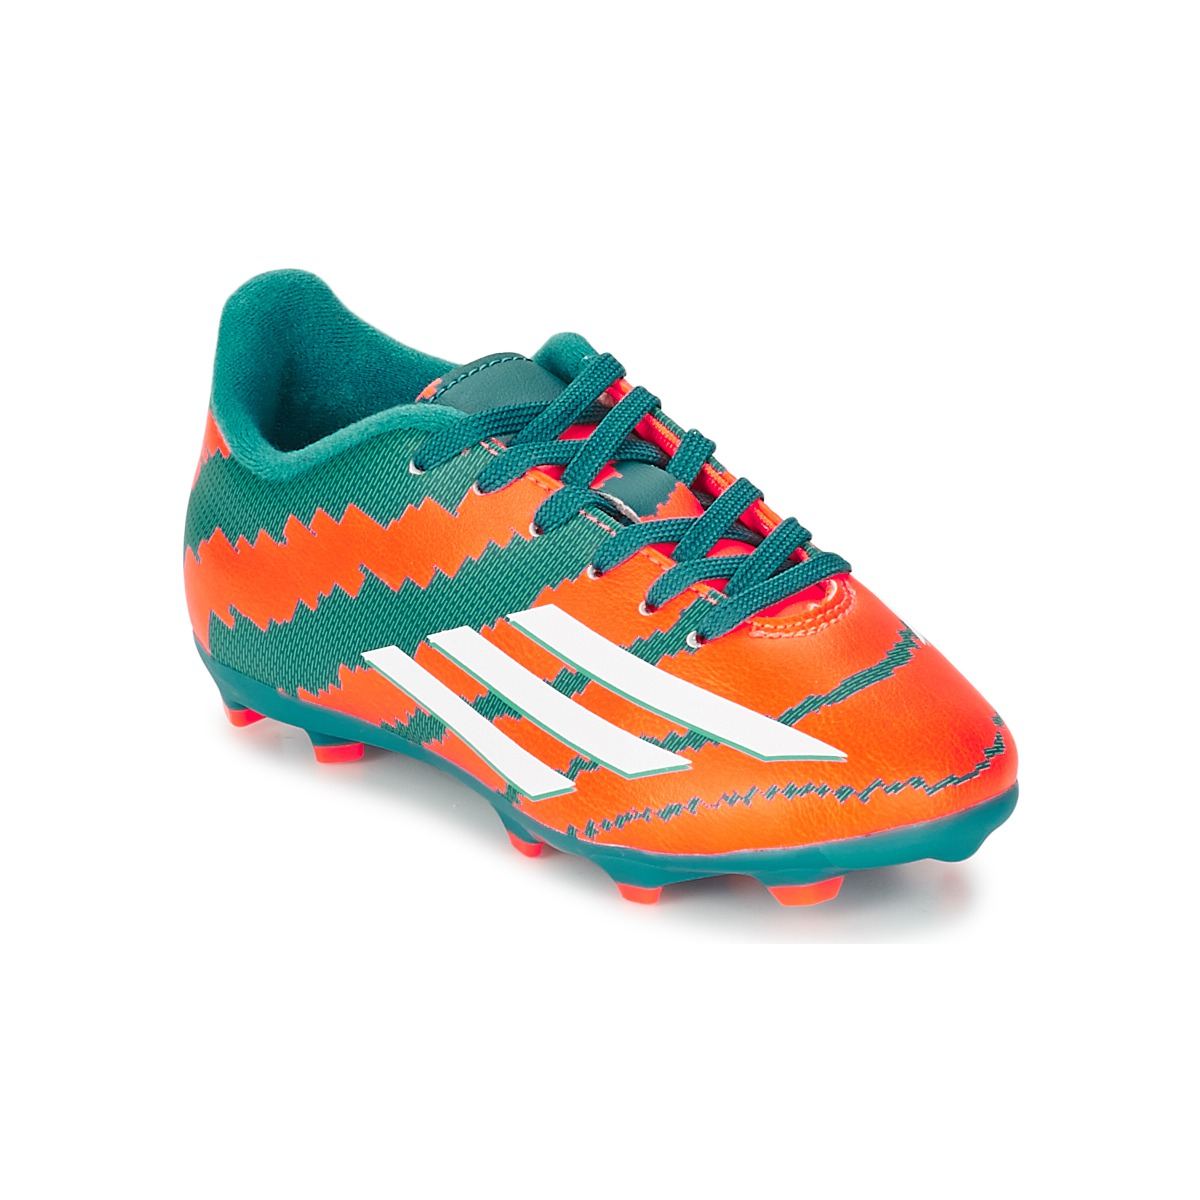 adidas Performance MESSI 10.3 FG J Turquoise / Orange